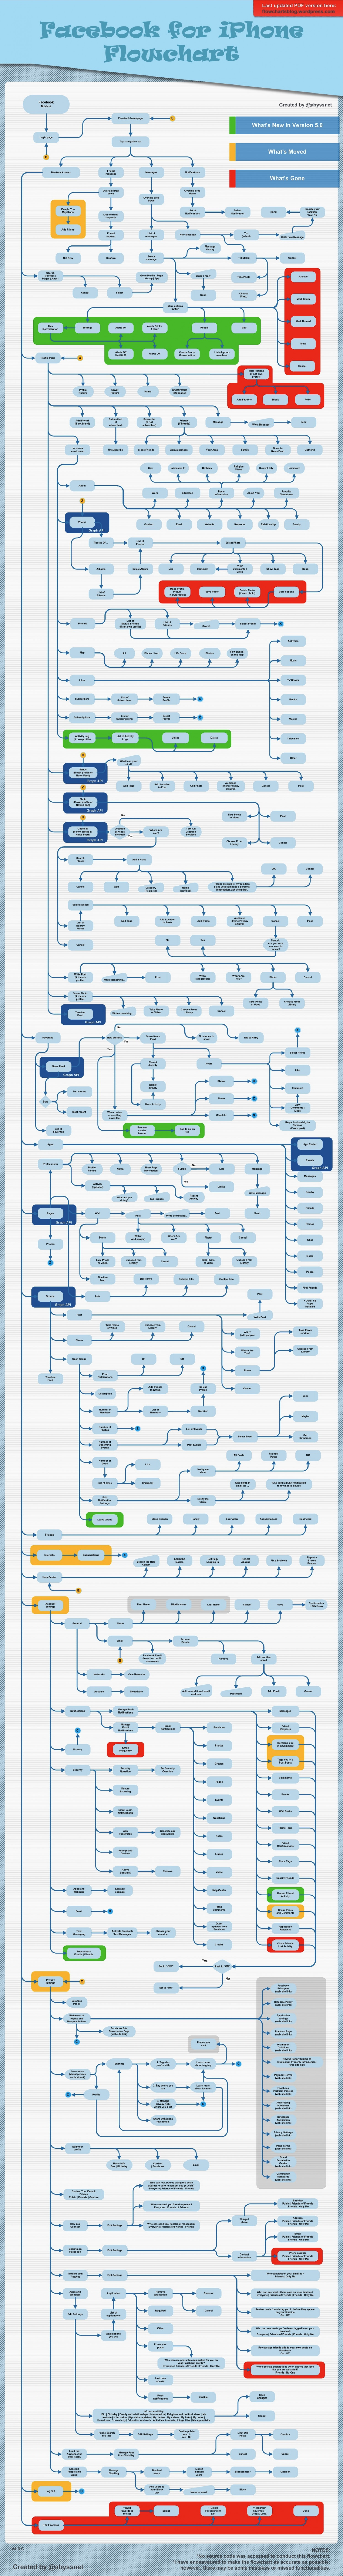 Facebook for iPhone: The Flowchart Infographic